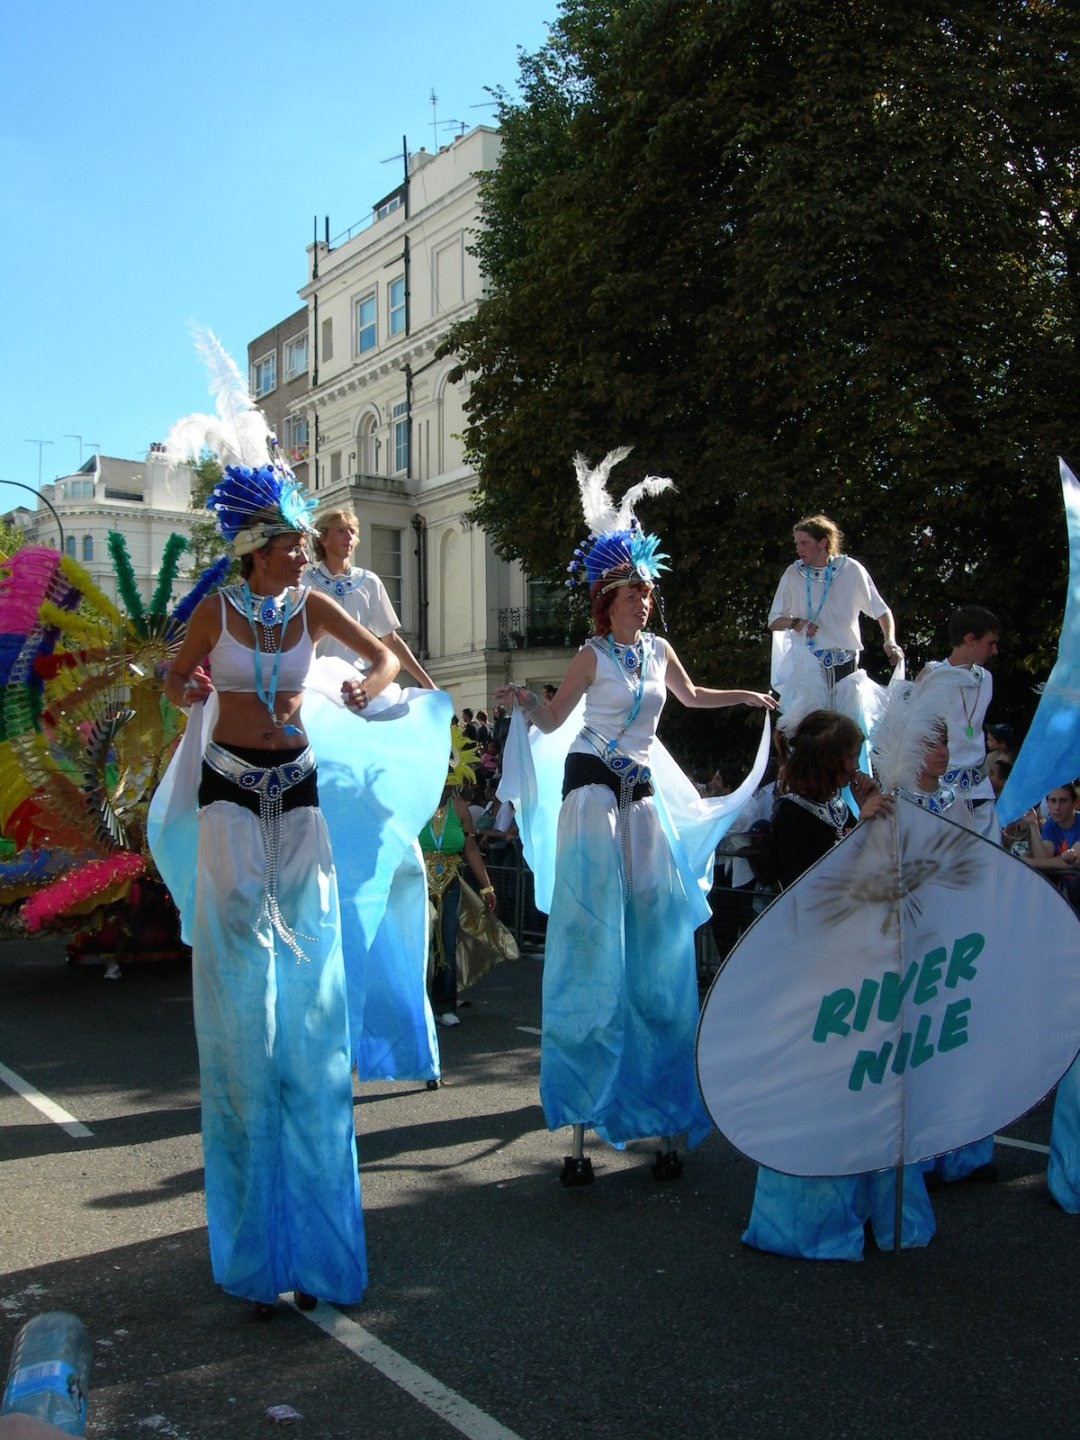 notting-hill-carnival-we-are-travel-girls-4